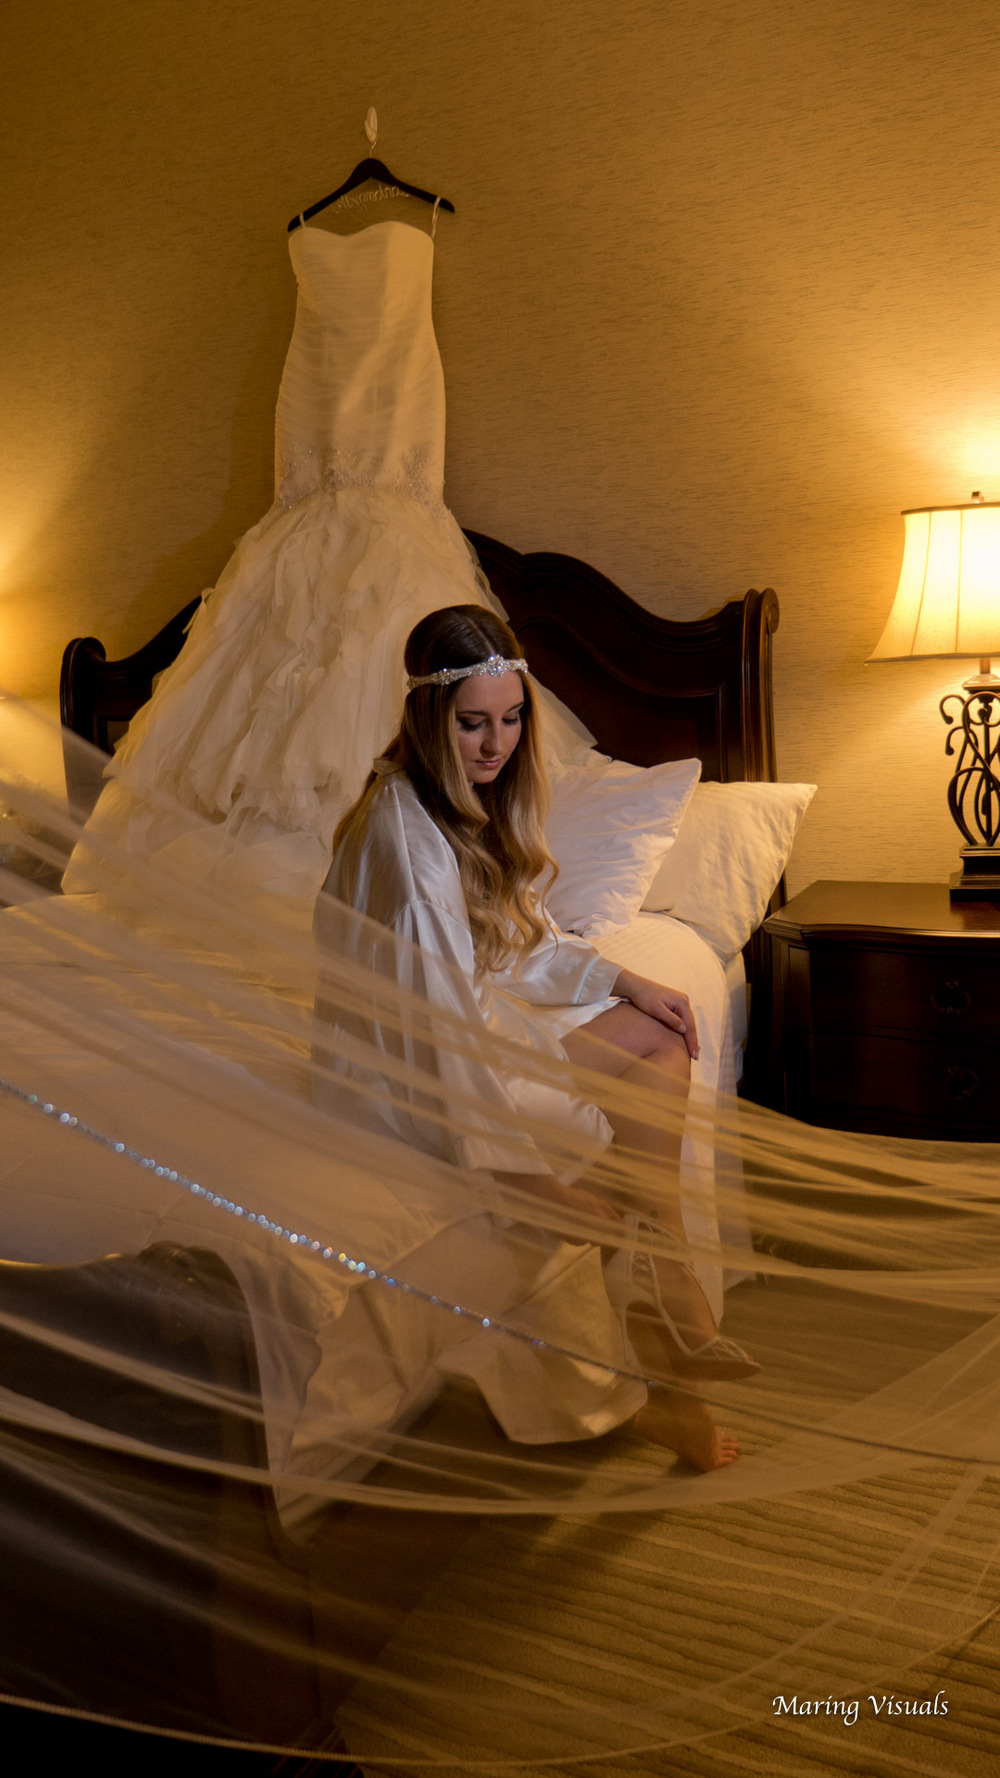 The bride slips on her shoes amidst her dress and veil service as the perfect decor.